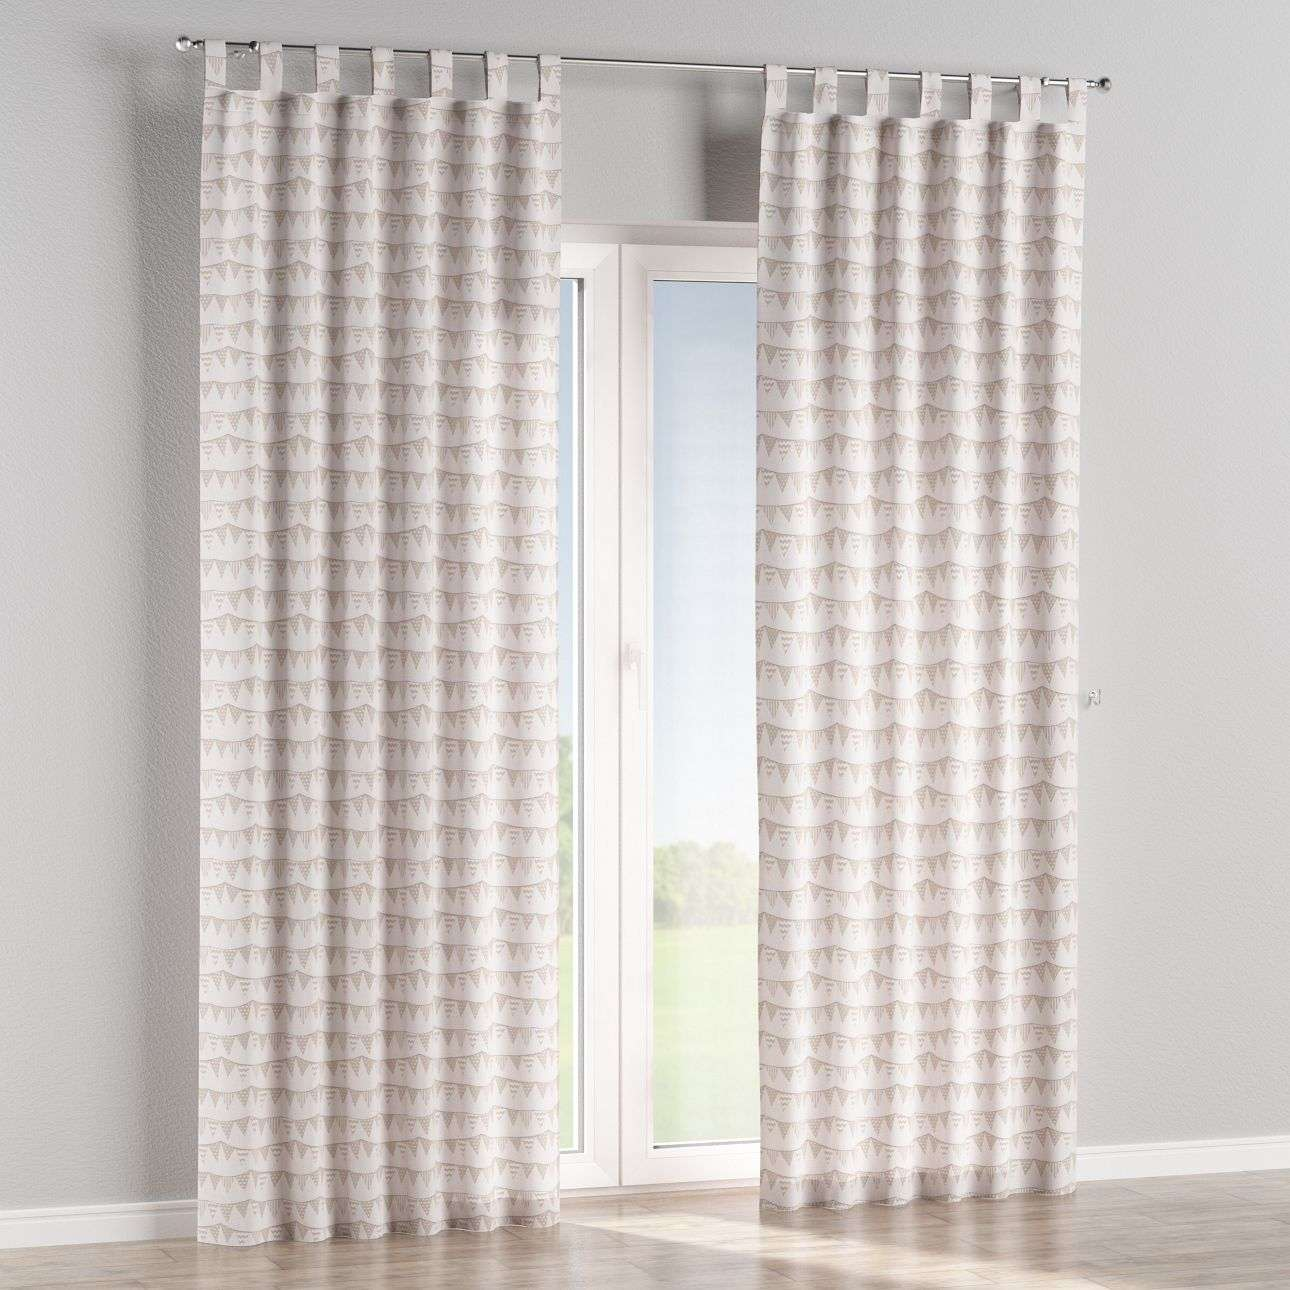 Tab top curtains 130 × 260 cm (51 × 102 inch) in collection Marina, fabric: 140-65